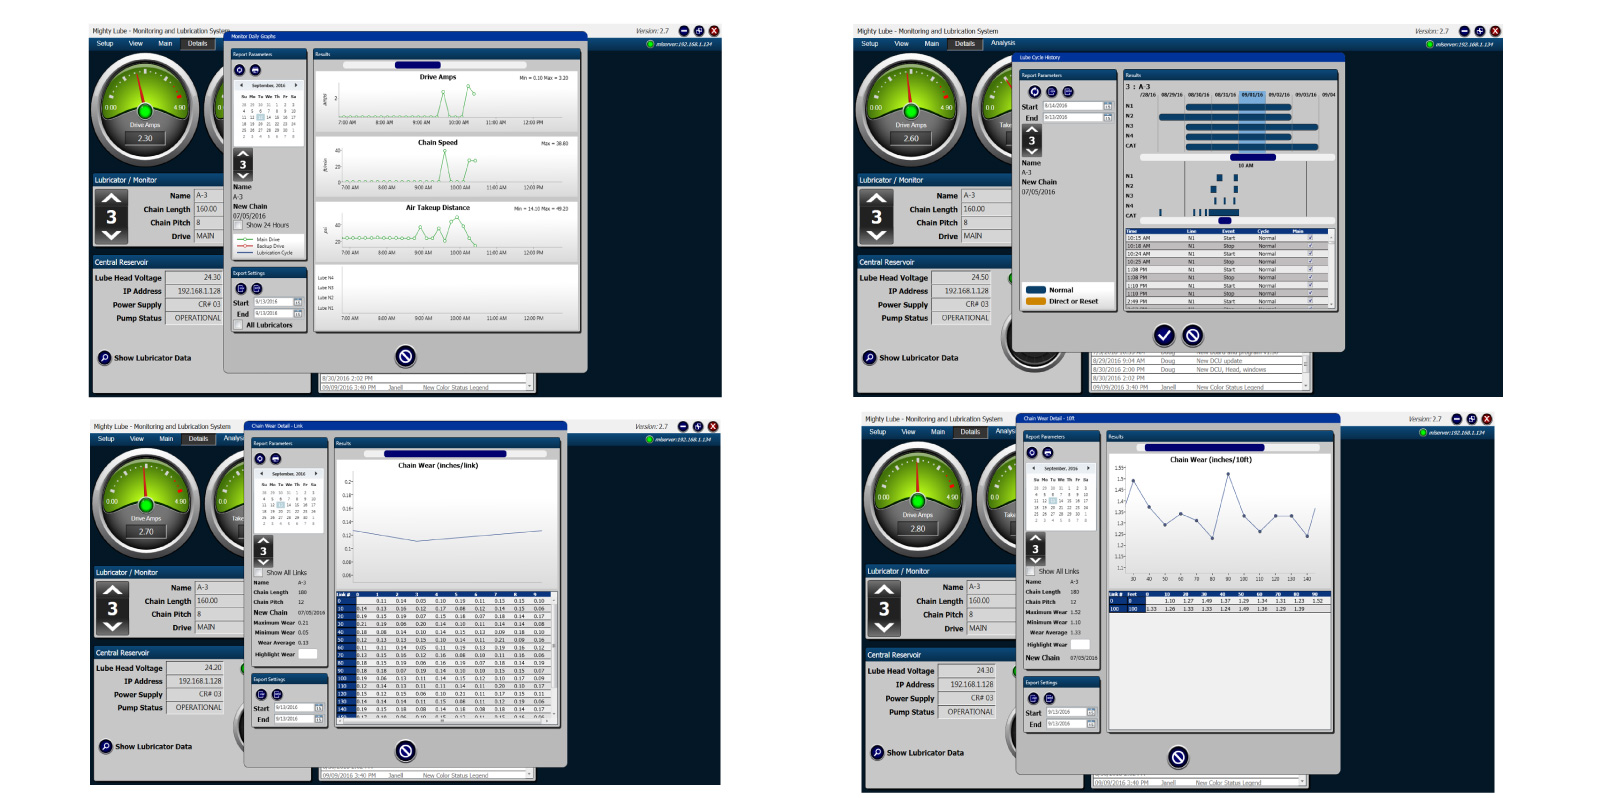 mighty lube conveyor monitoring software screenshots